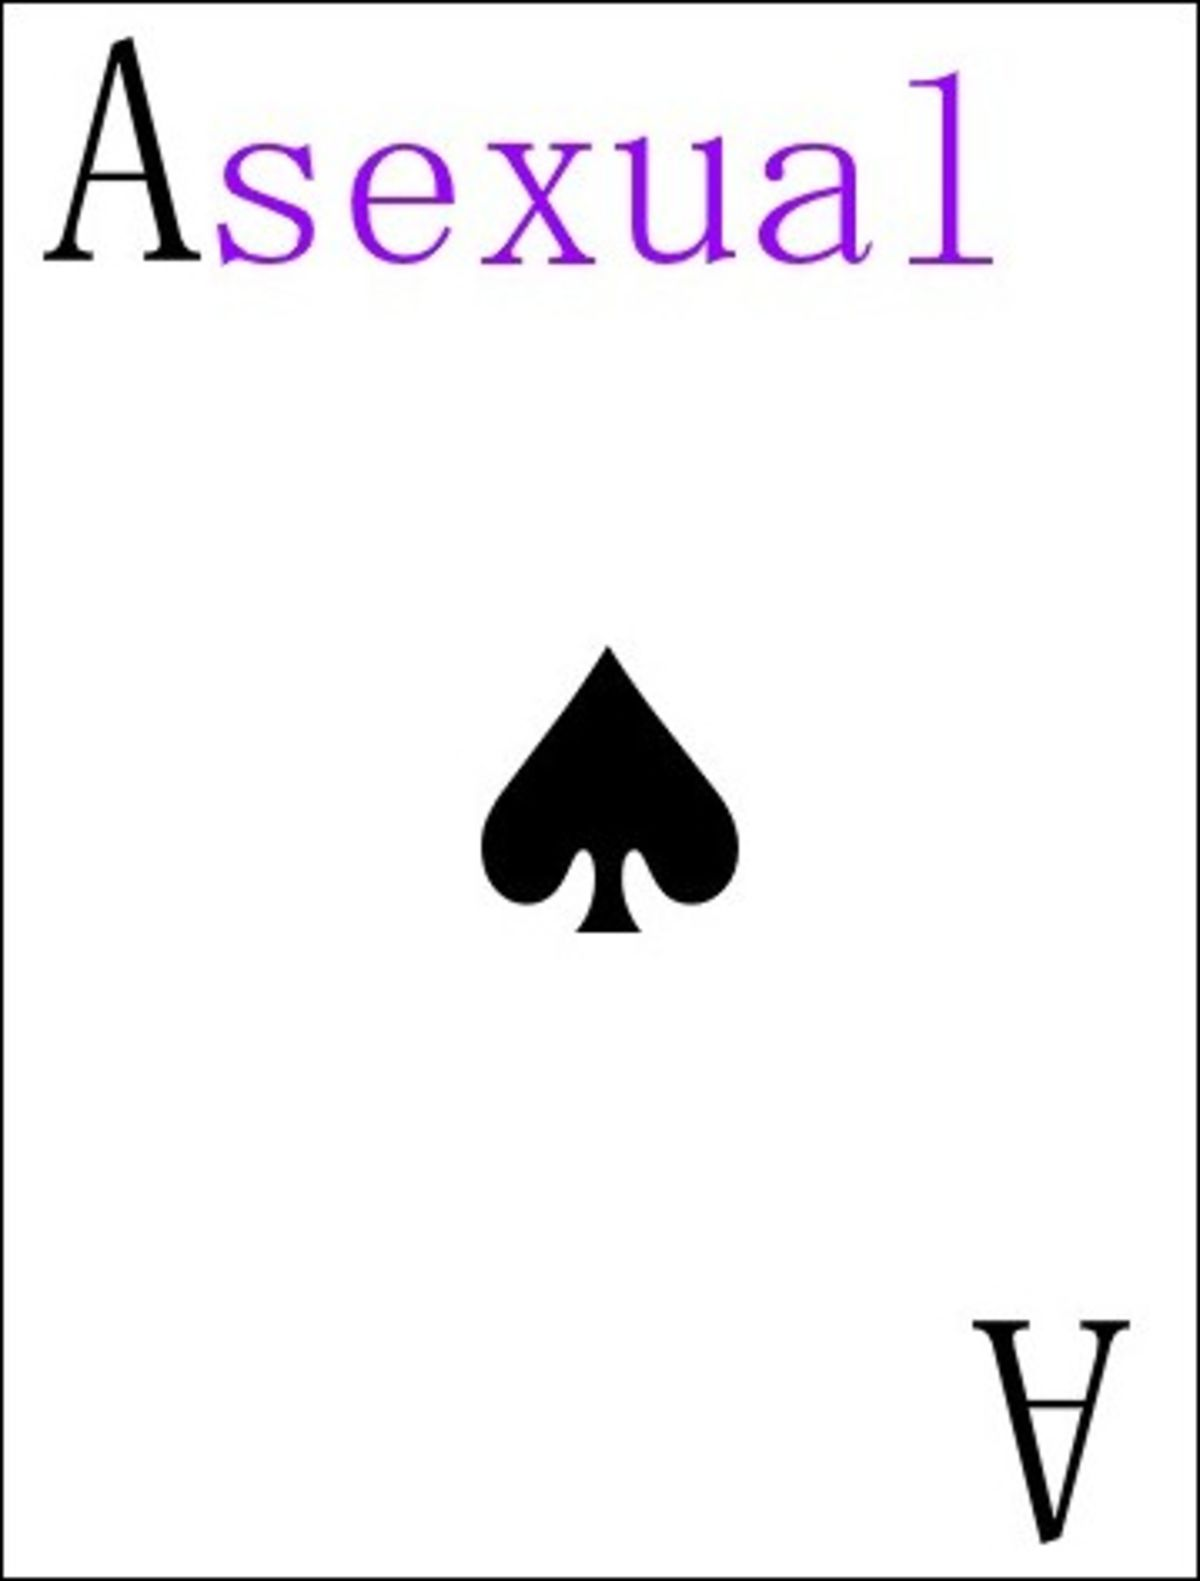 Asexual dating nz